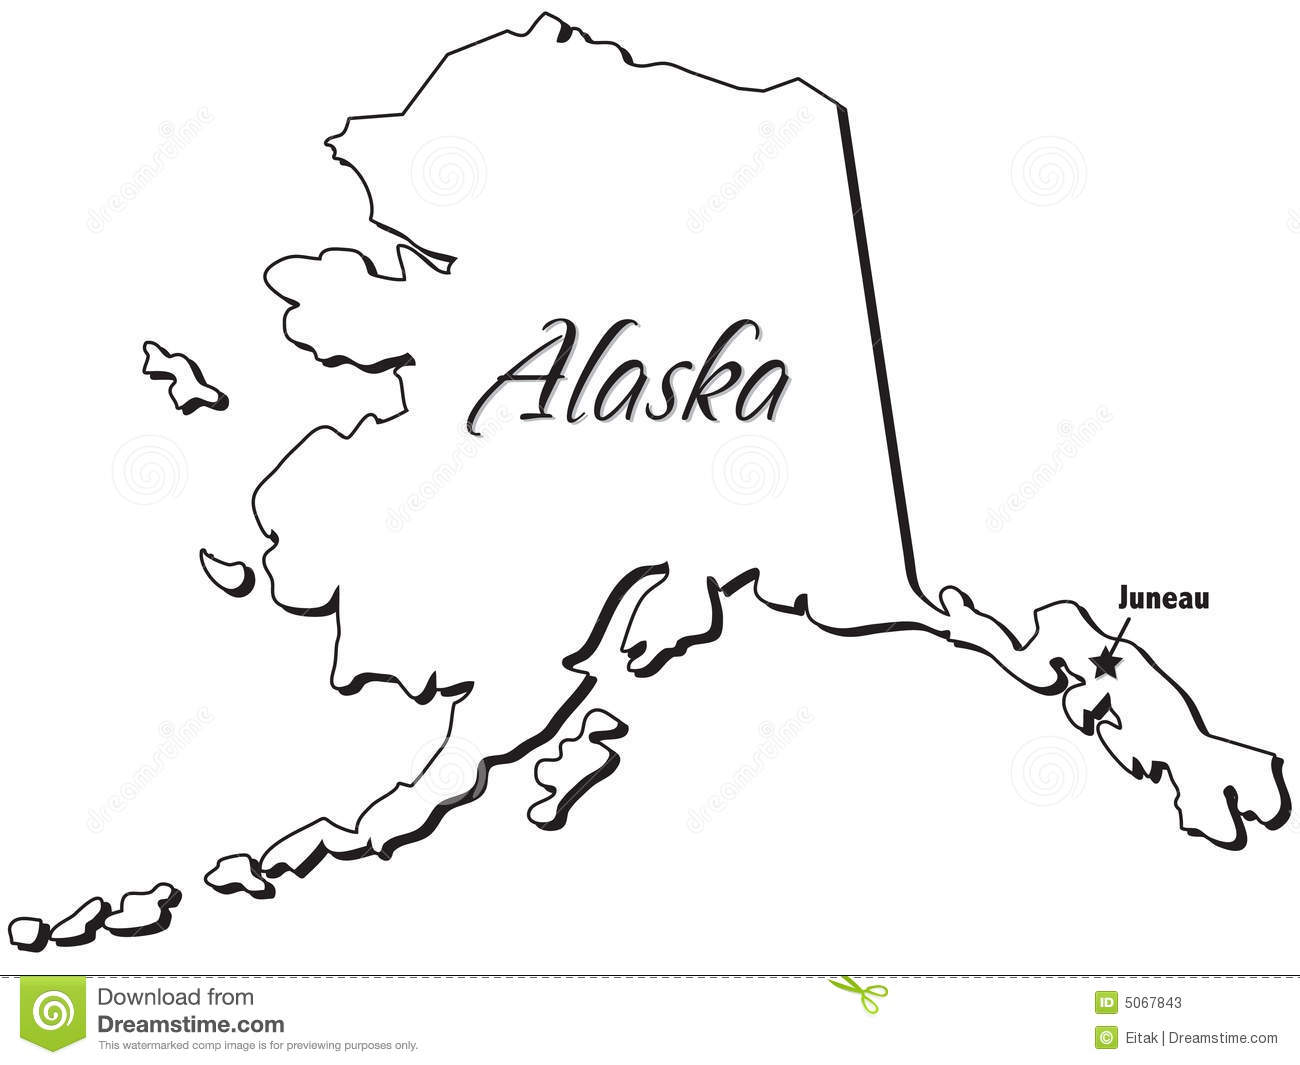 State of Alaska Outline stock vector. Illustration of isolation